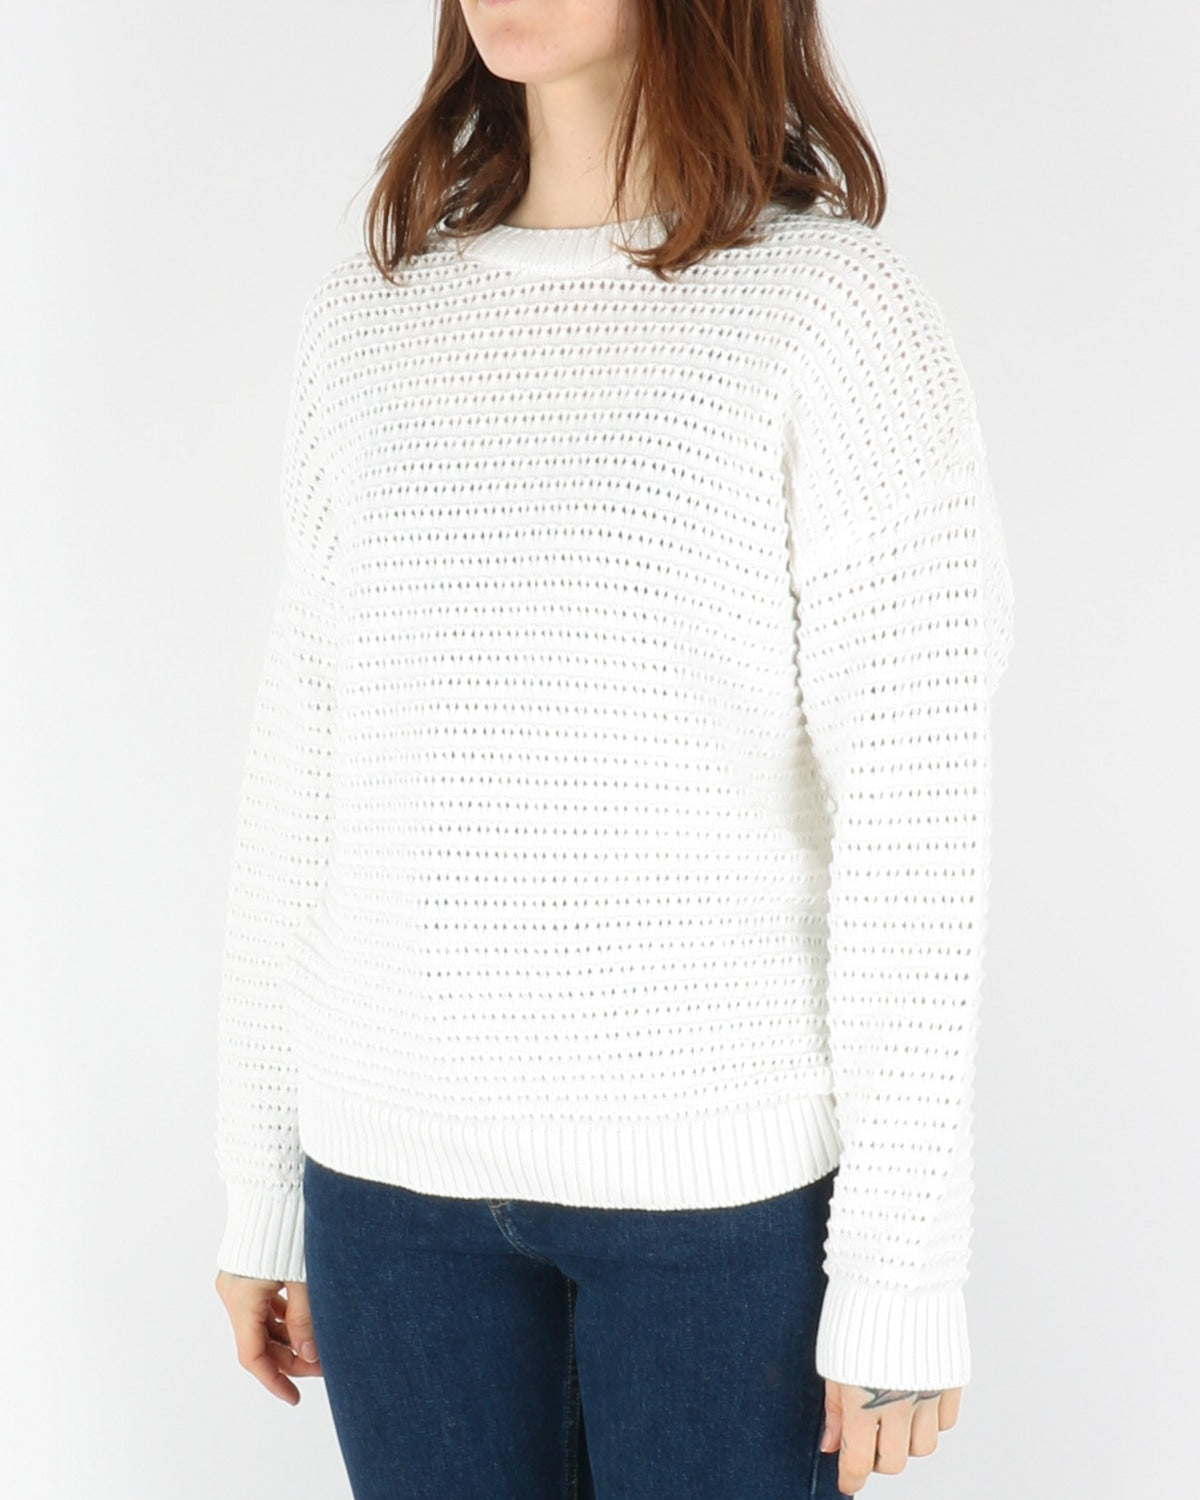 basic apparel_enya sweater_white_2_3